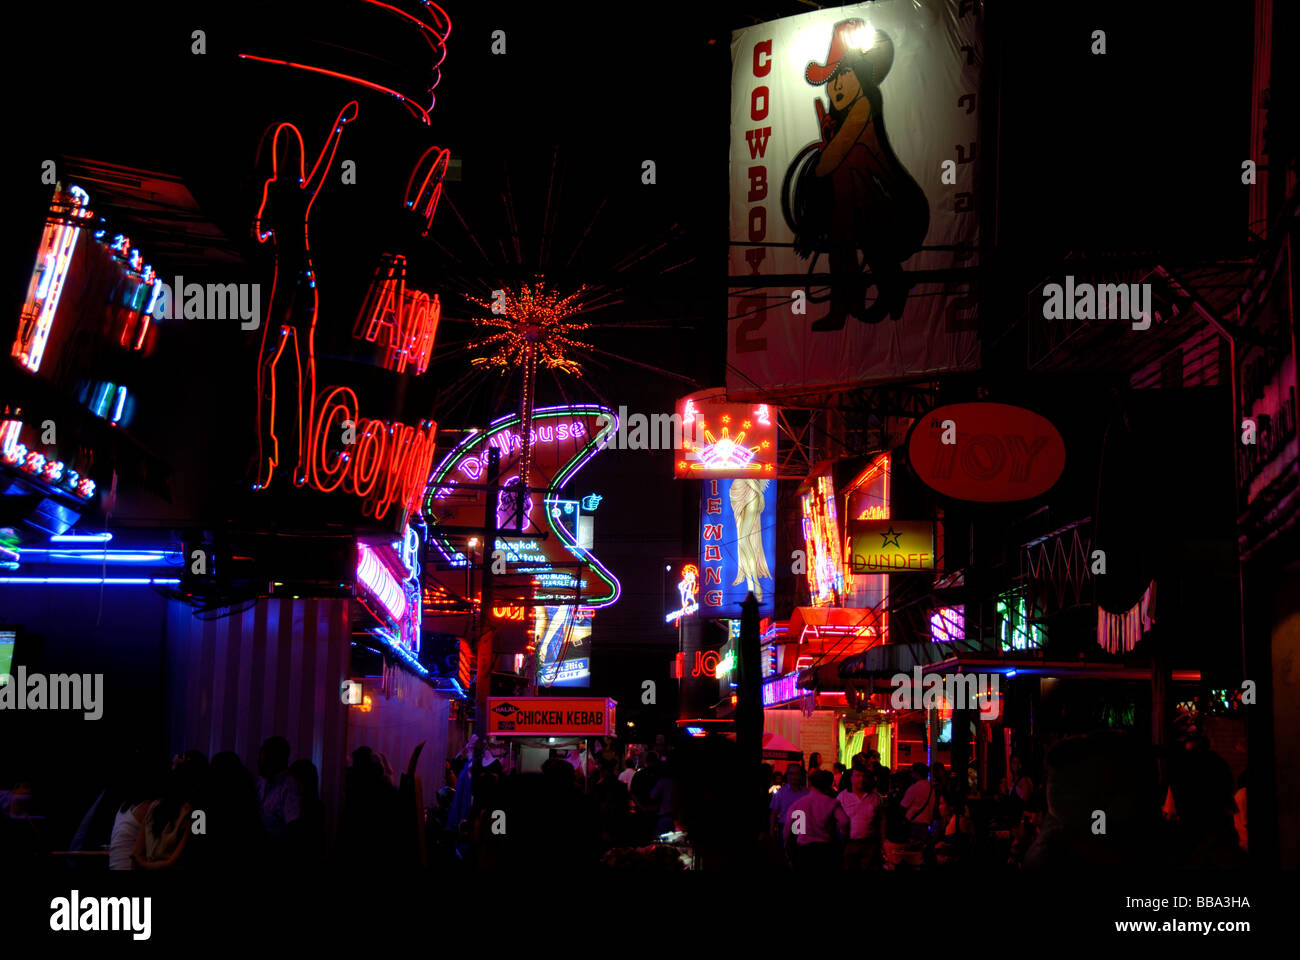 Nightlife, colorful neon signs, red light district Soi Cowboy, Bangkok, Thailand, Southeast Asia - Stock Image